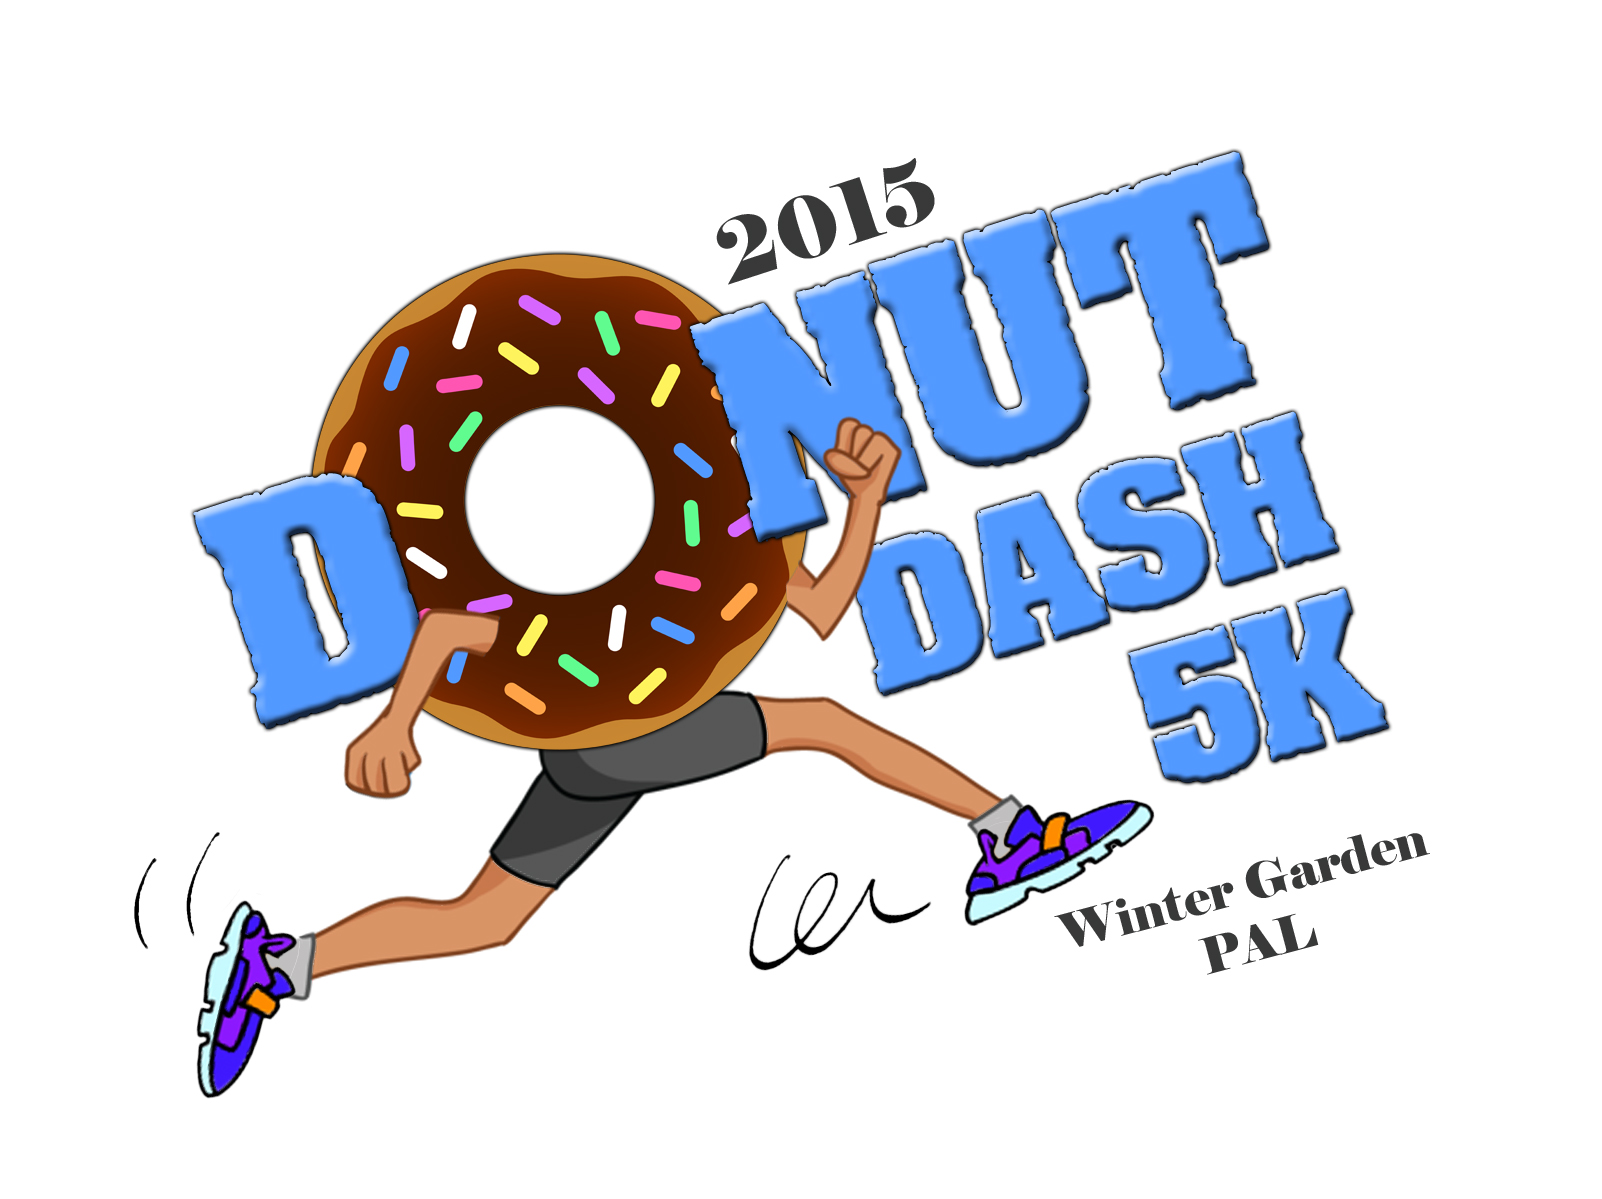 donut dash 5k winter garden fl 2015 active